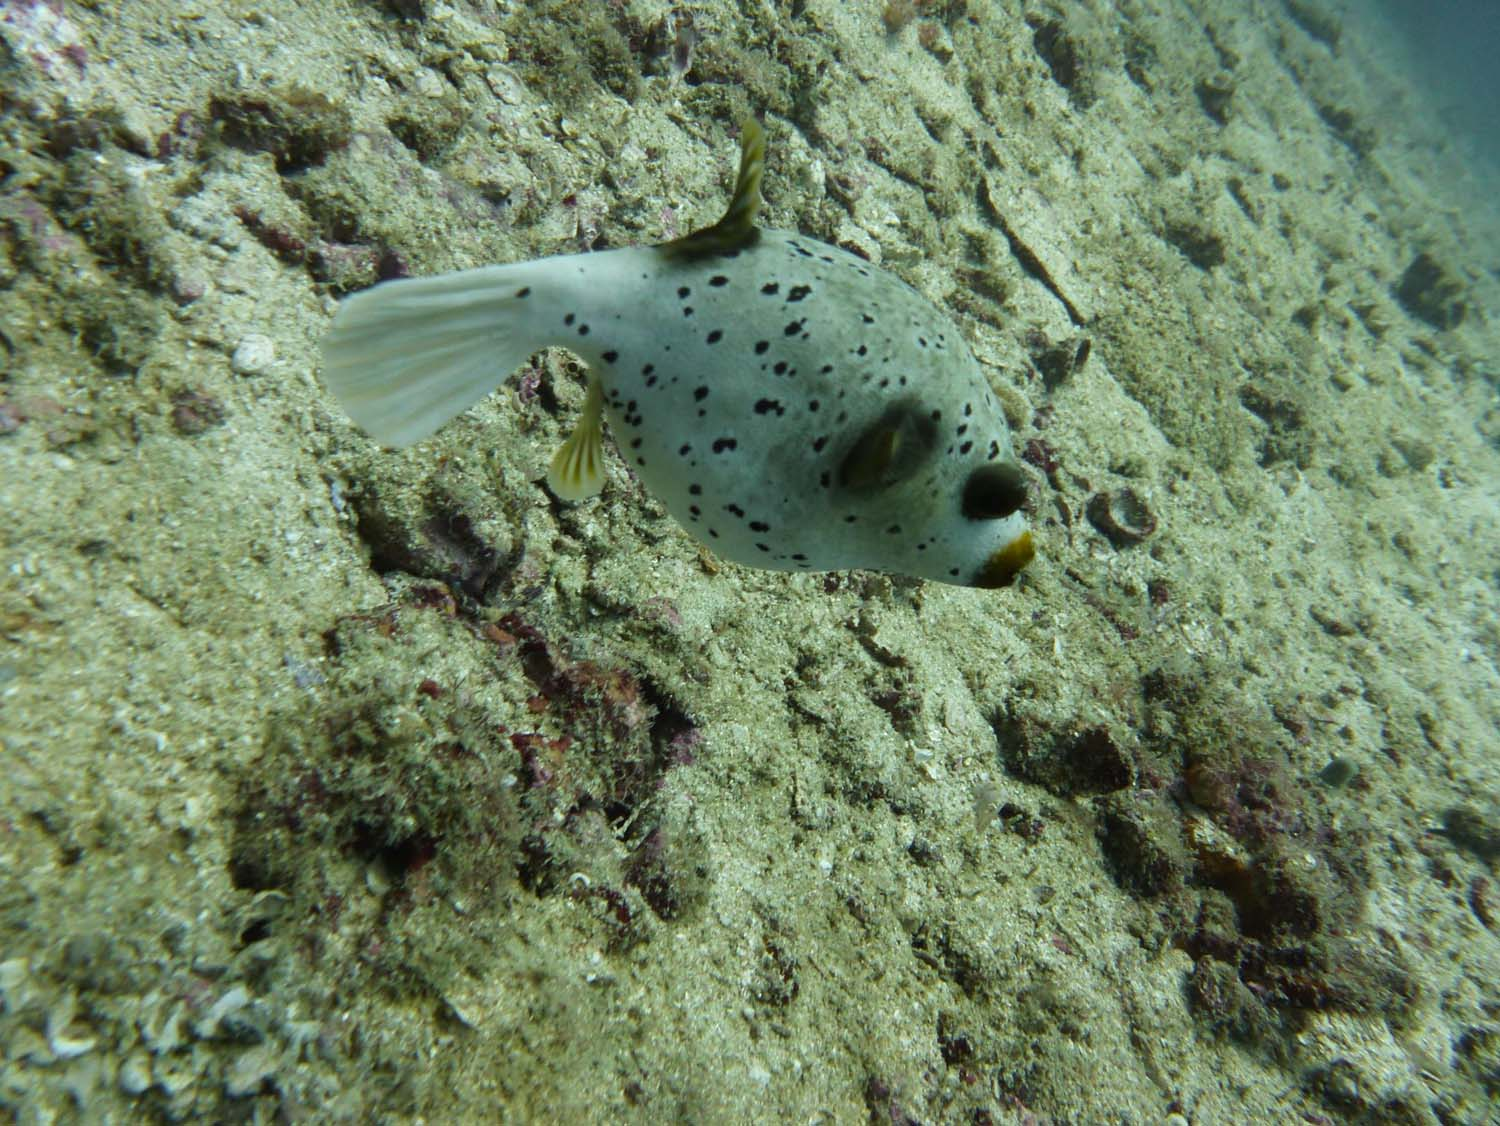 puffer fish - they make themselves a lot bigger when they feel threatened